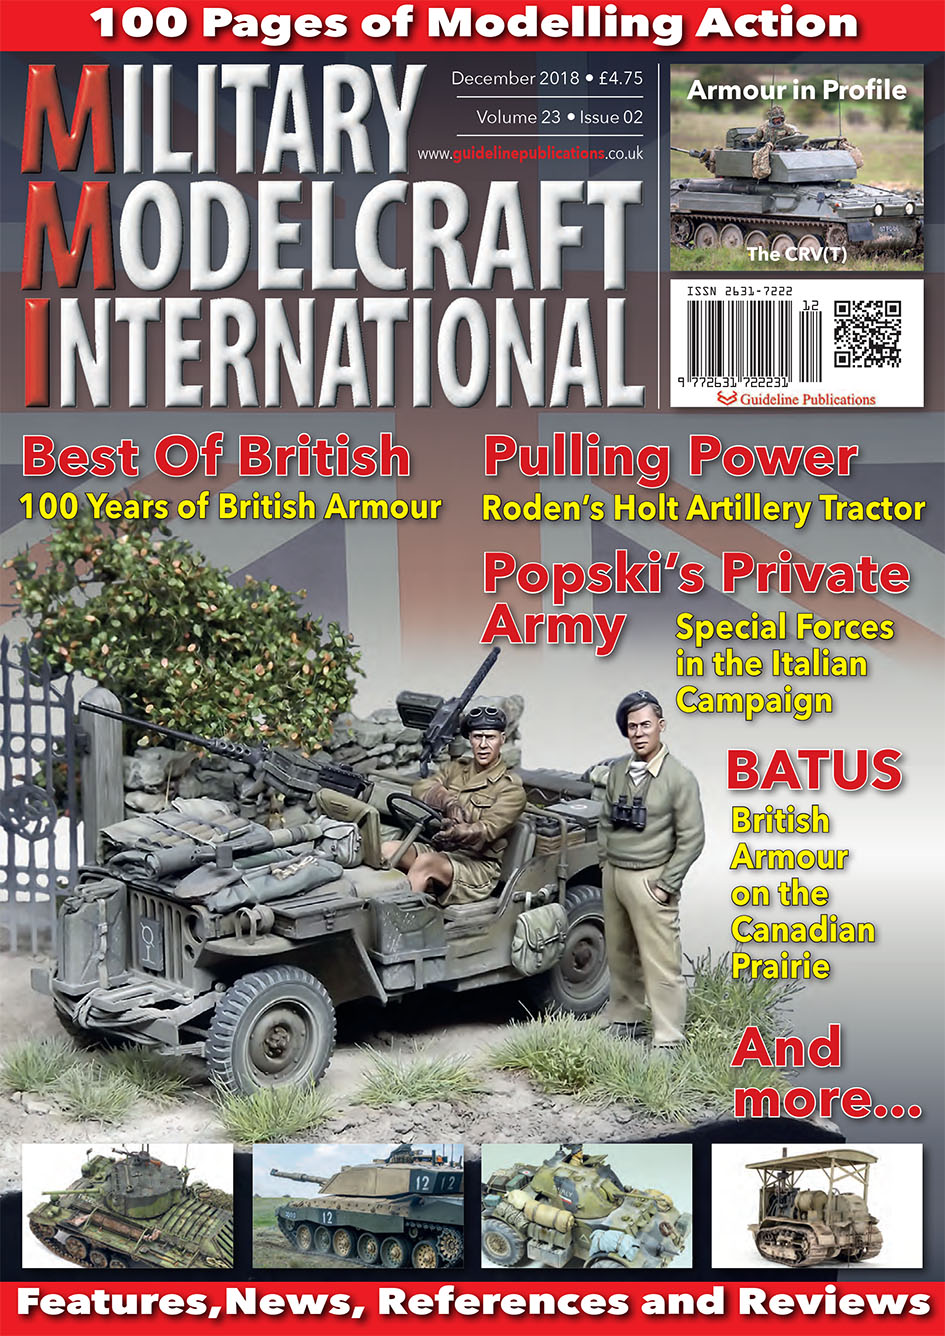 Guideline Publications Military Modelcraft Int Dec 2018 vol 23-02 - December  2018